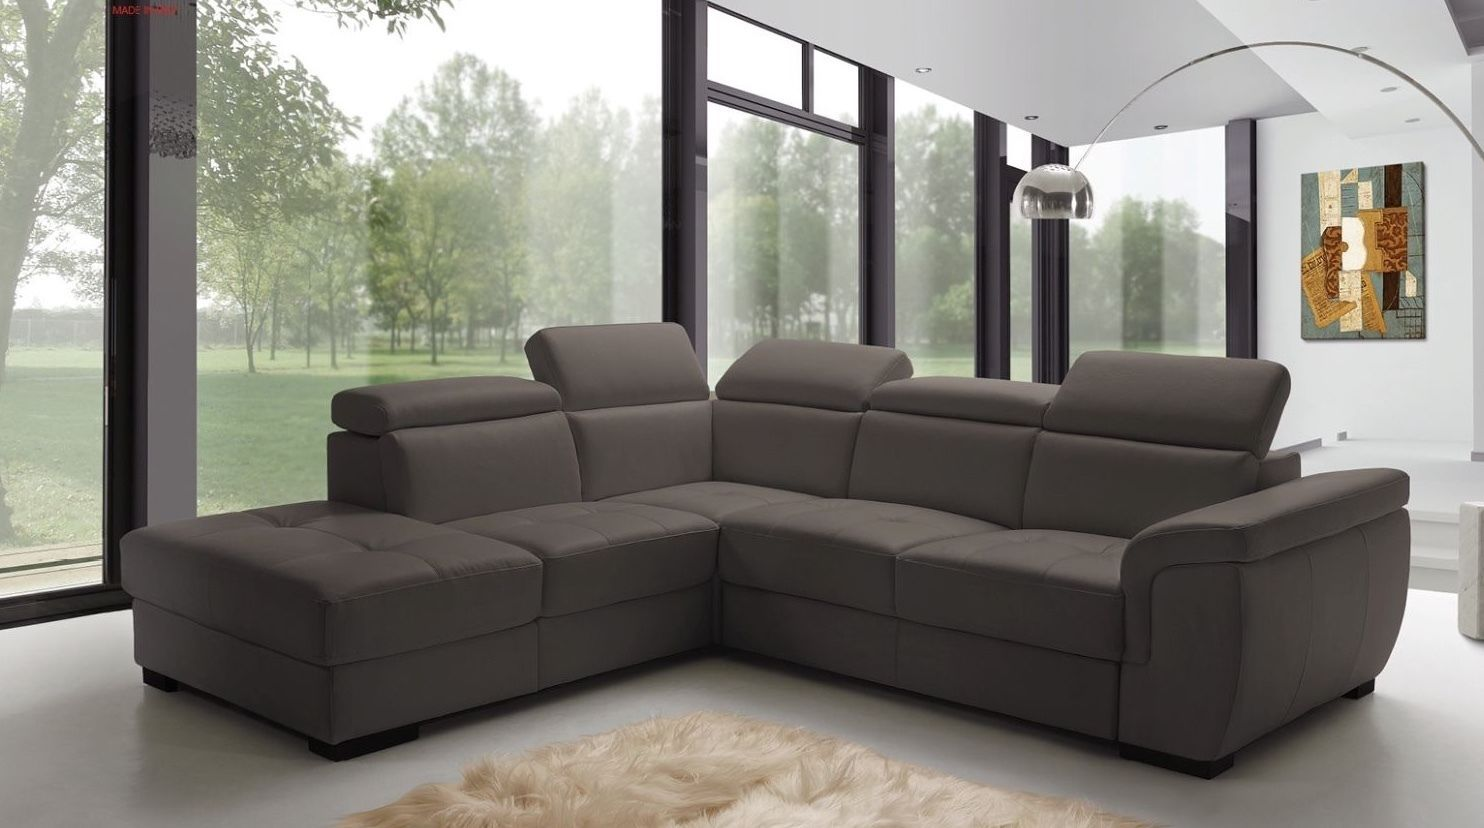 ESF Freedom Fabric Sectional Sleeper Sofa Modern Left Hand Facing